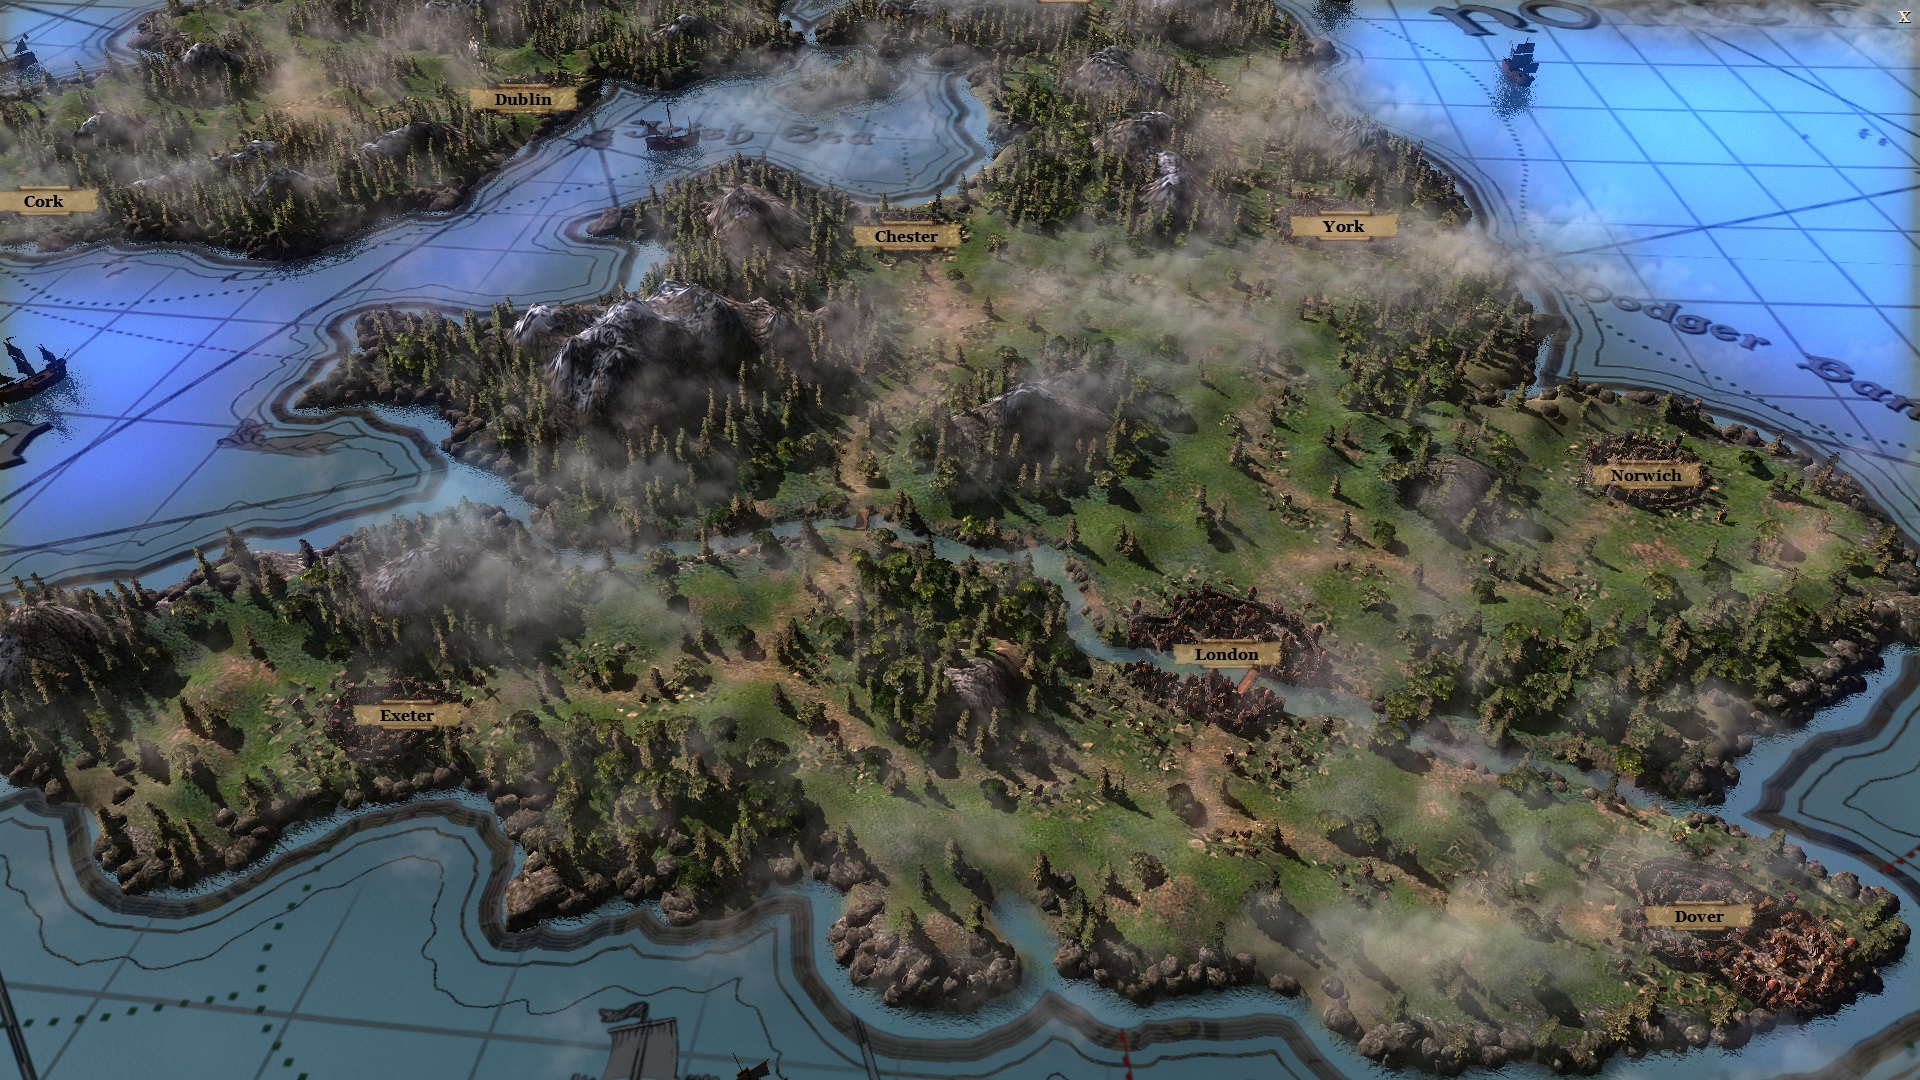 Medieval Kingdom Wars, Medieval, Kingdom Wars, Medieval Kingdom Wars Review, Early Access, Strategy, Simulation, Indie, RTS, Reverie World Studios, PC, Game, Review,